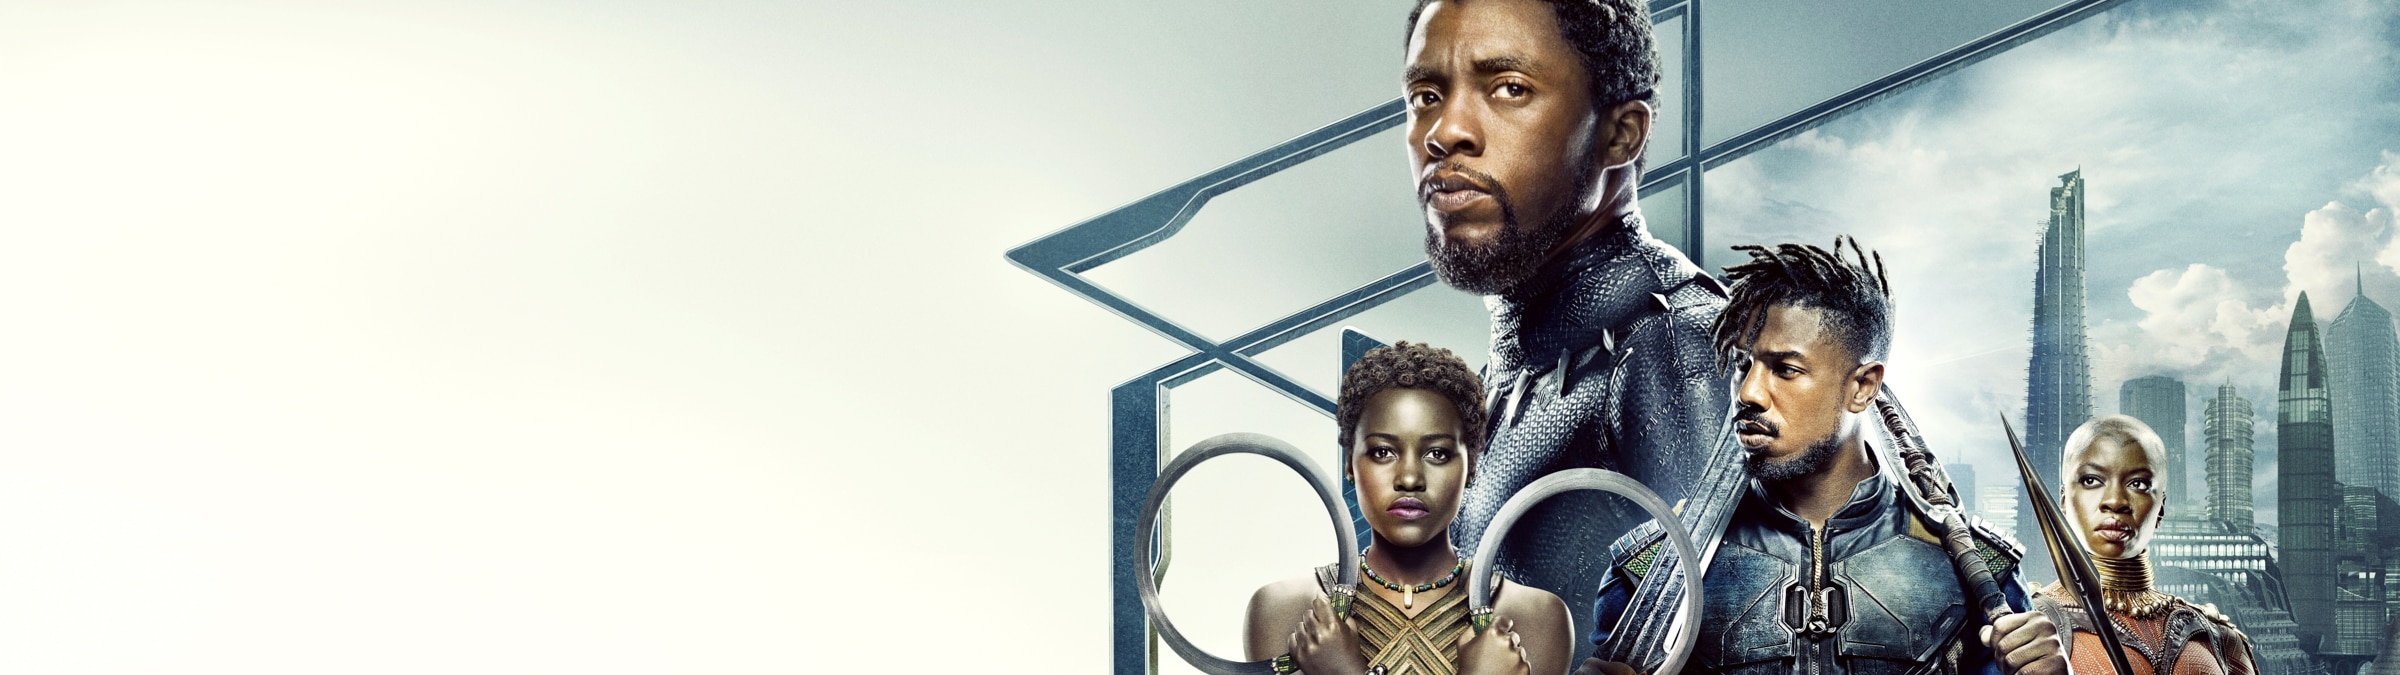 Find out more about Wakanda